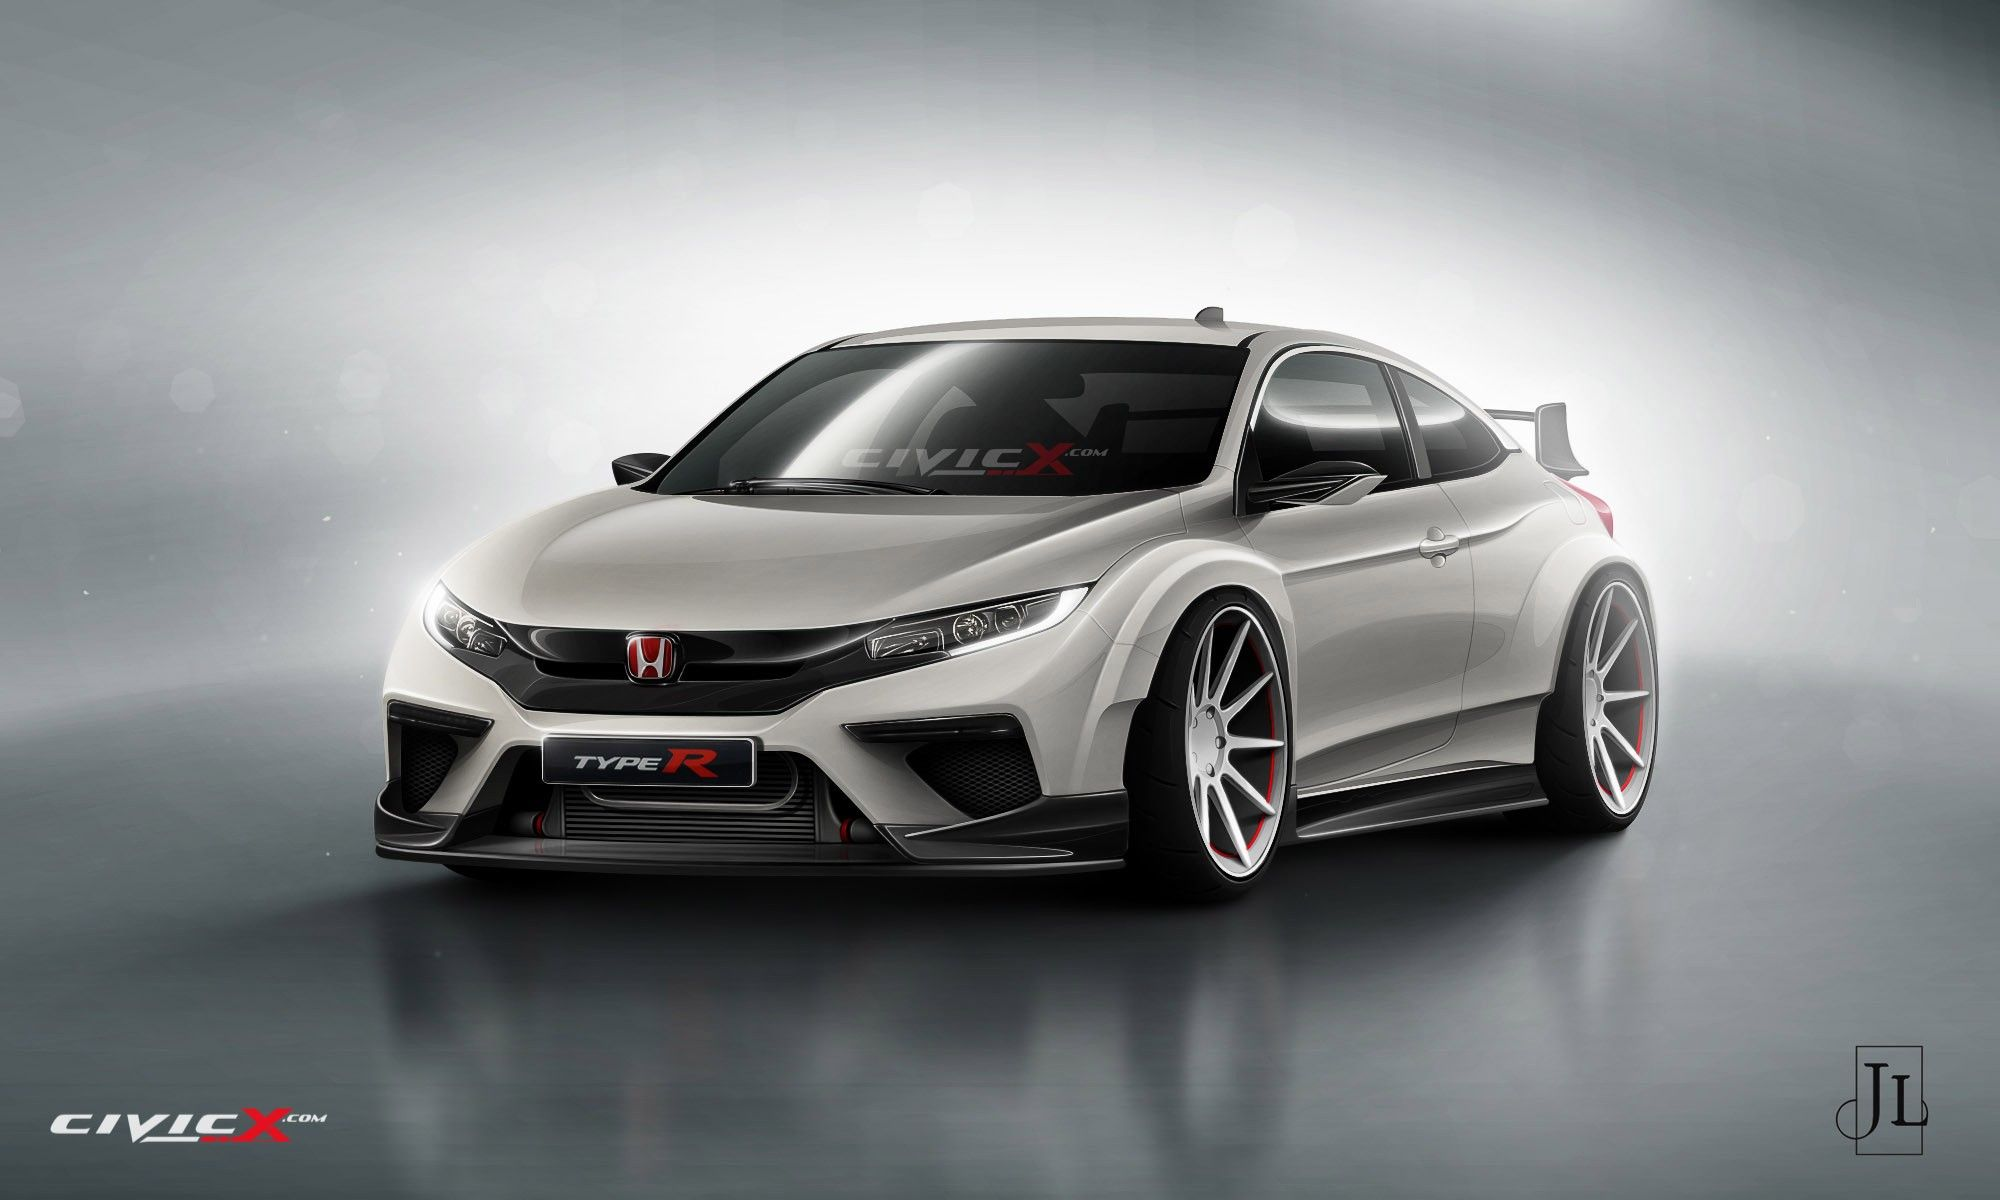 2017 Honda Civic Hd Wallpaper Download Wallpaper Pinterest